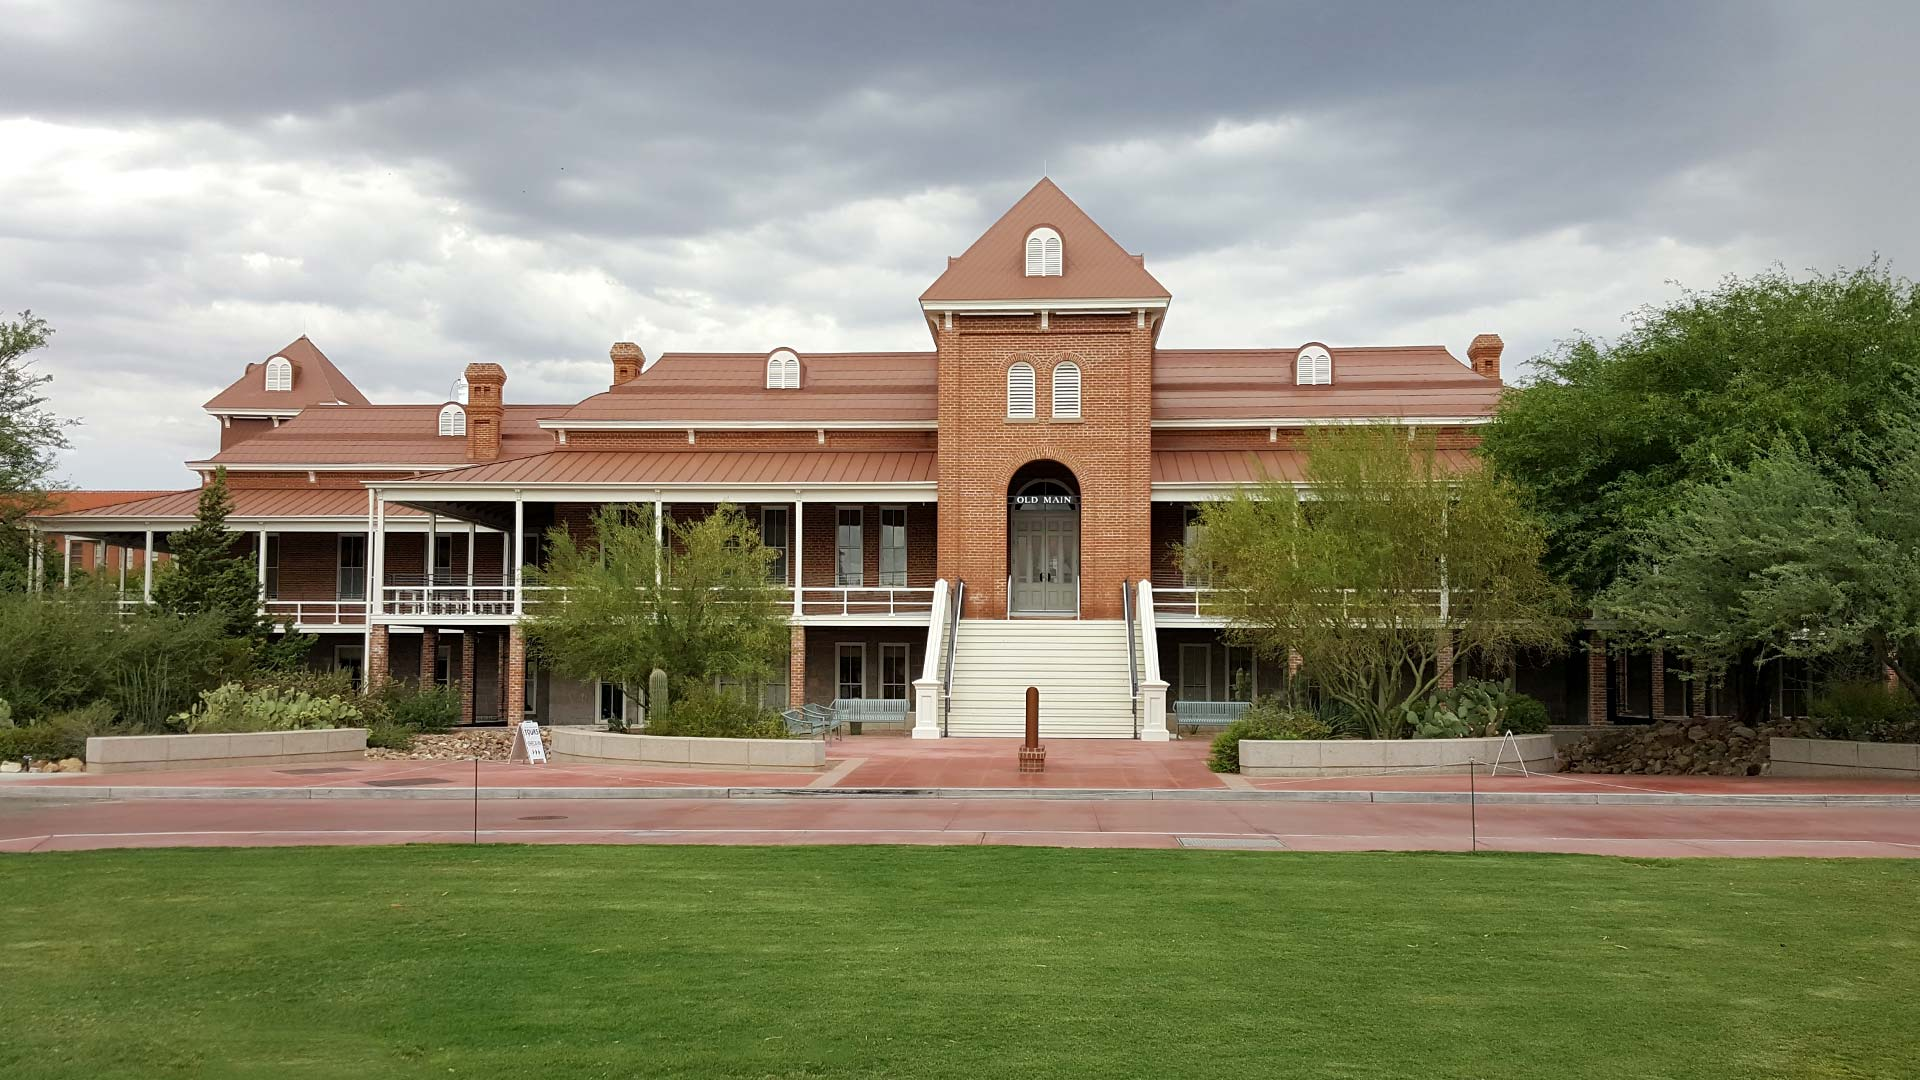 A cloudy sky over Old Main at the University of Arizona.